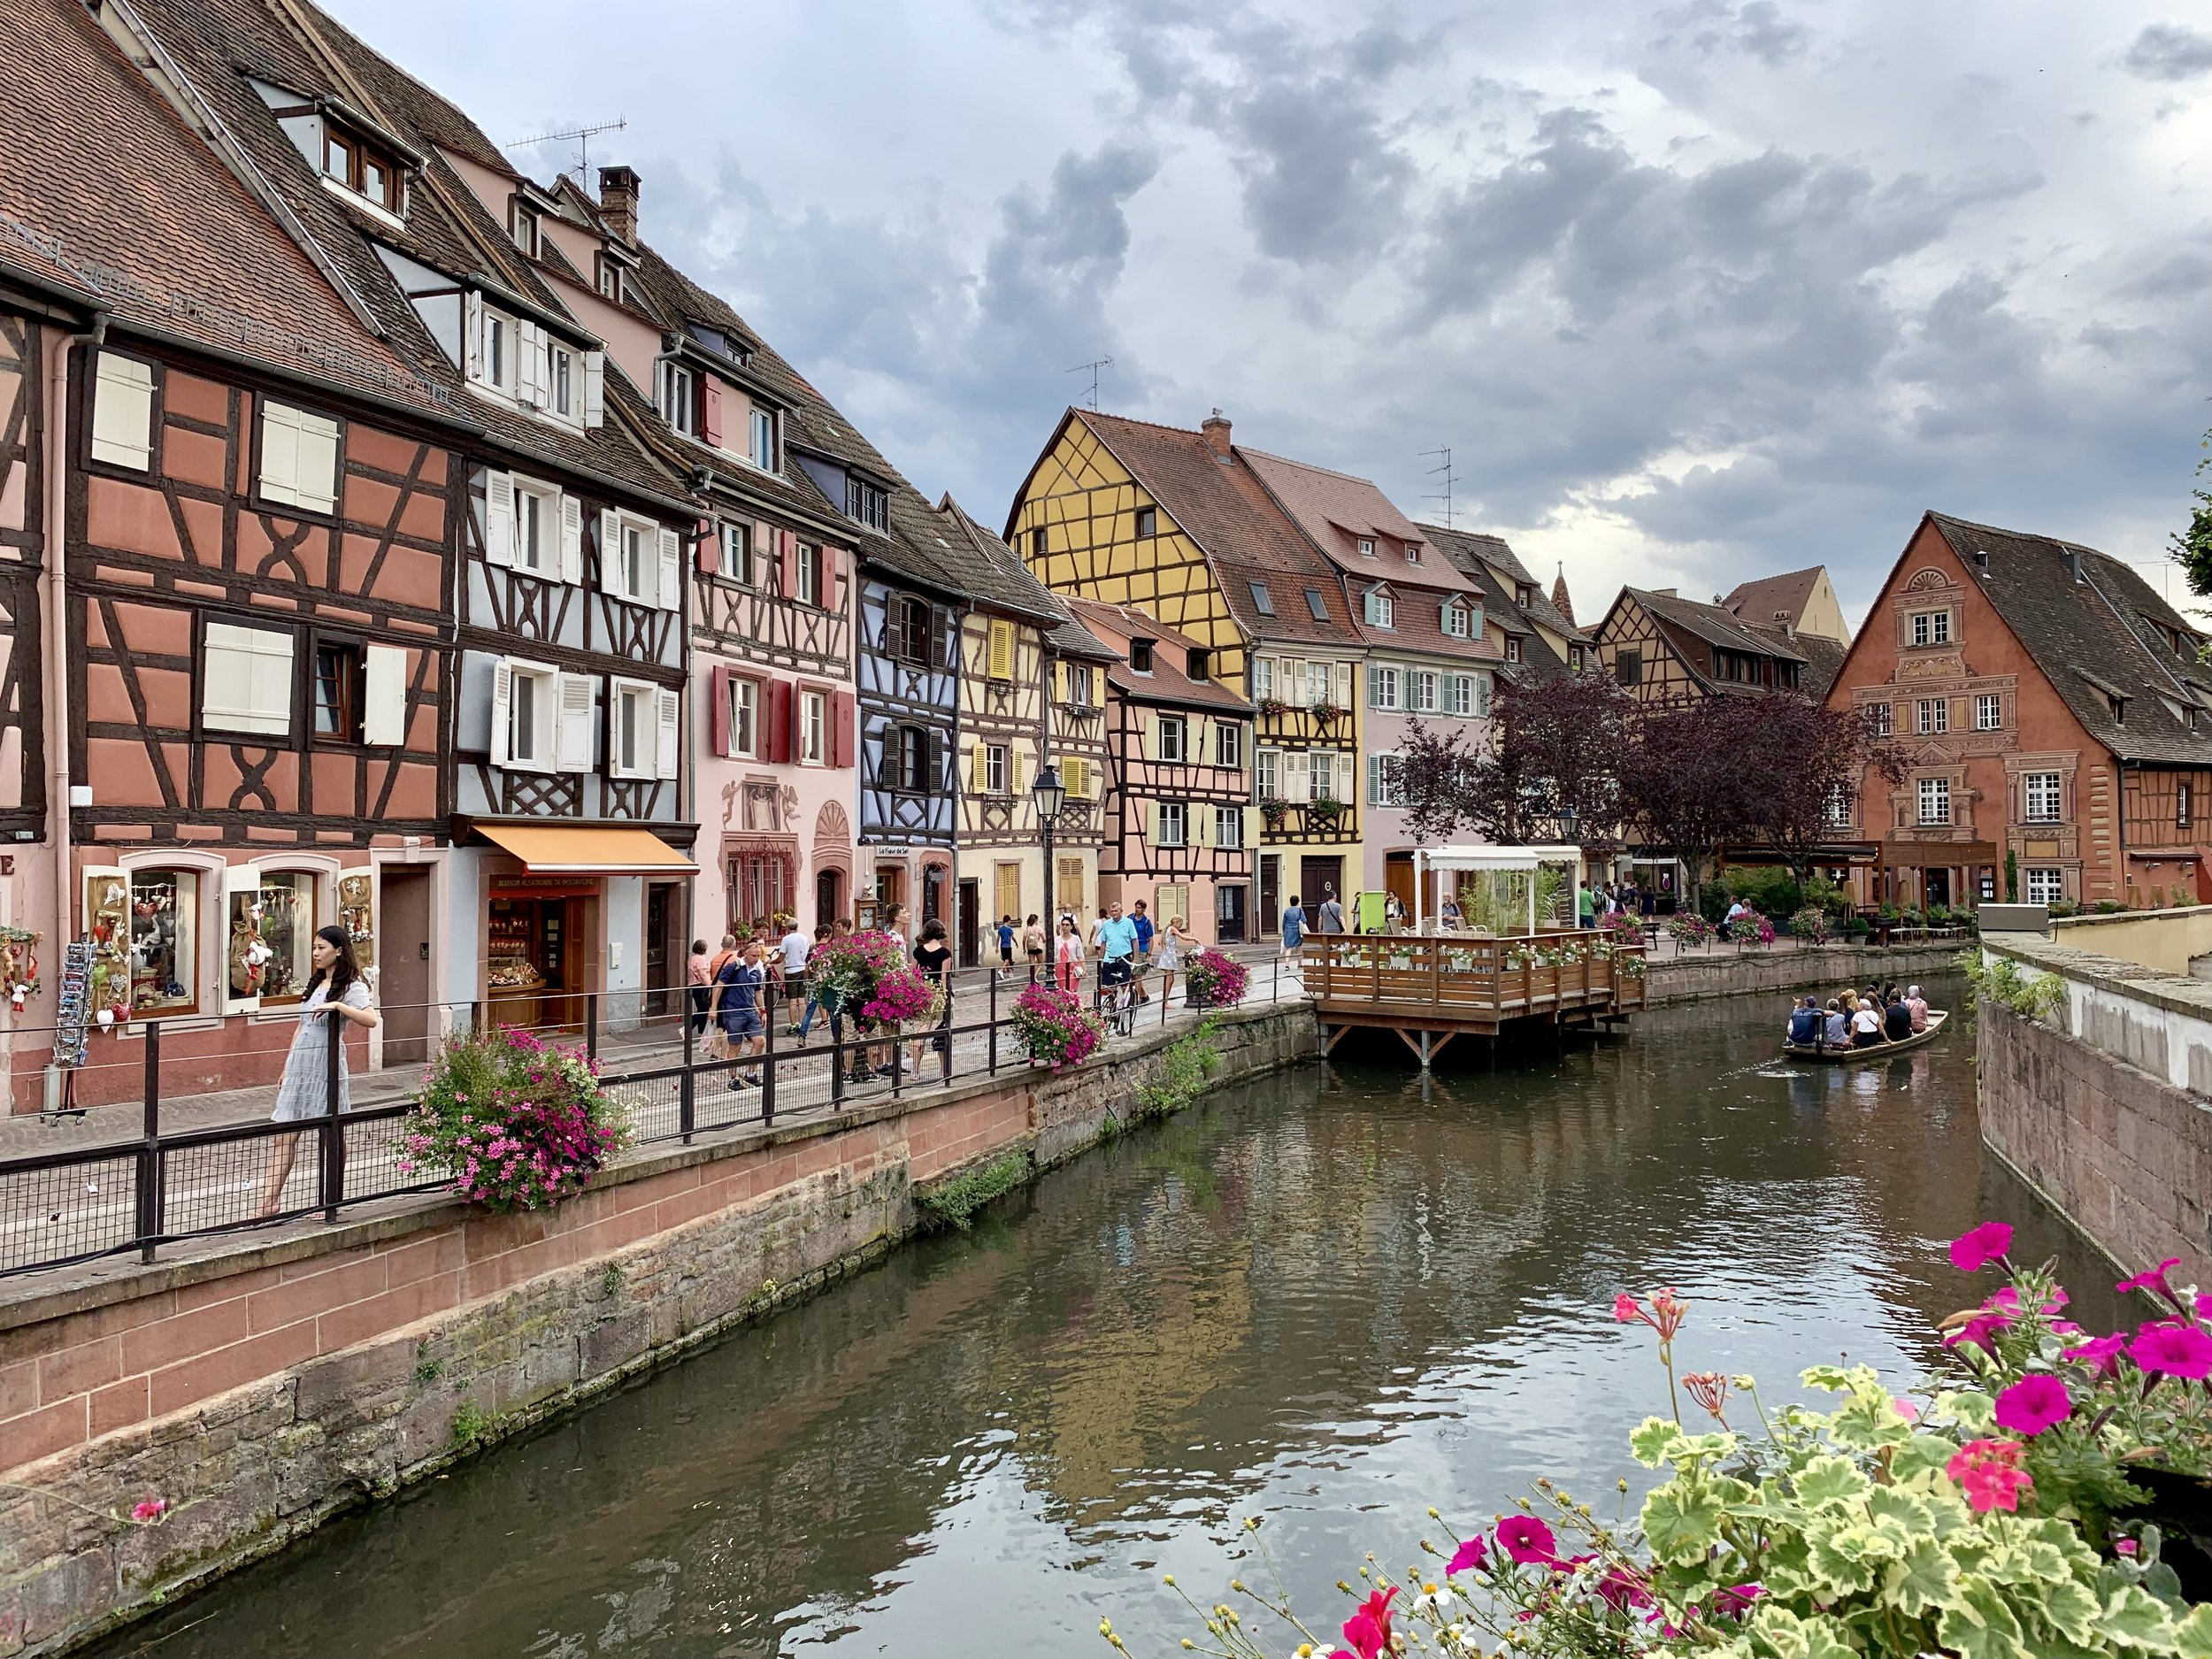 The Little Venice section of Old Town Colmar, France. August 9, 2019.